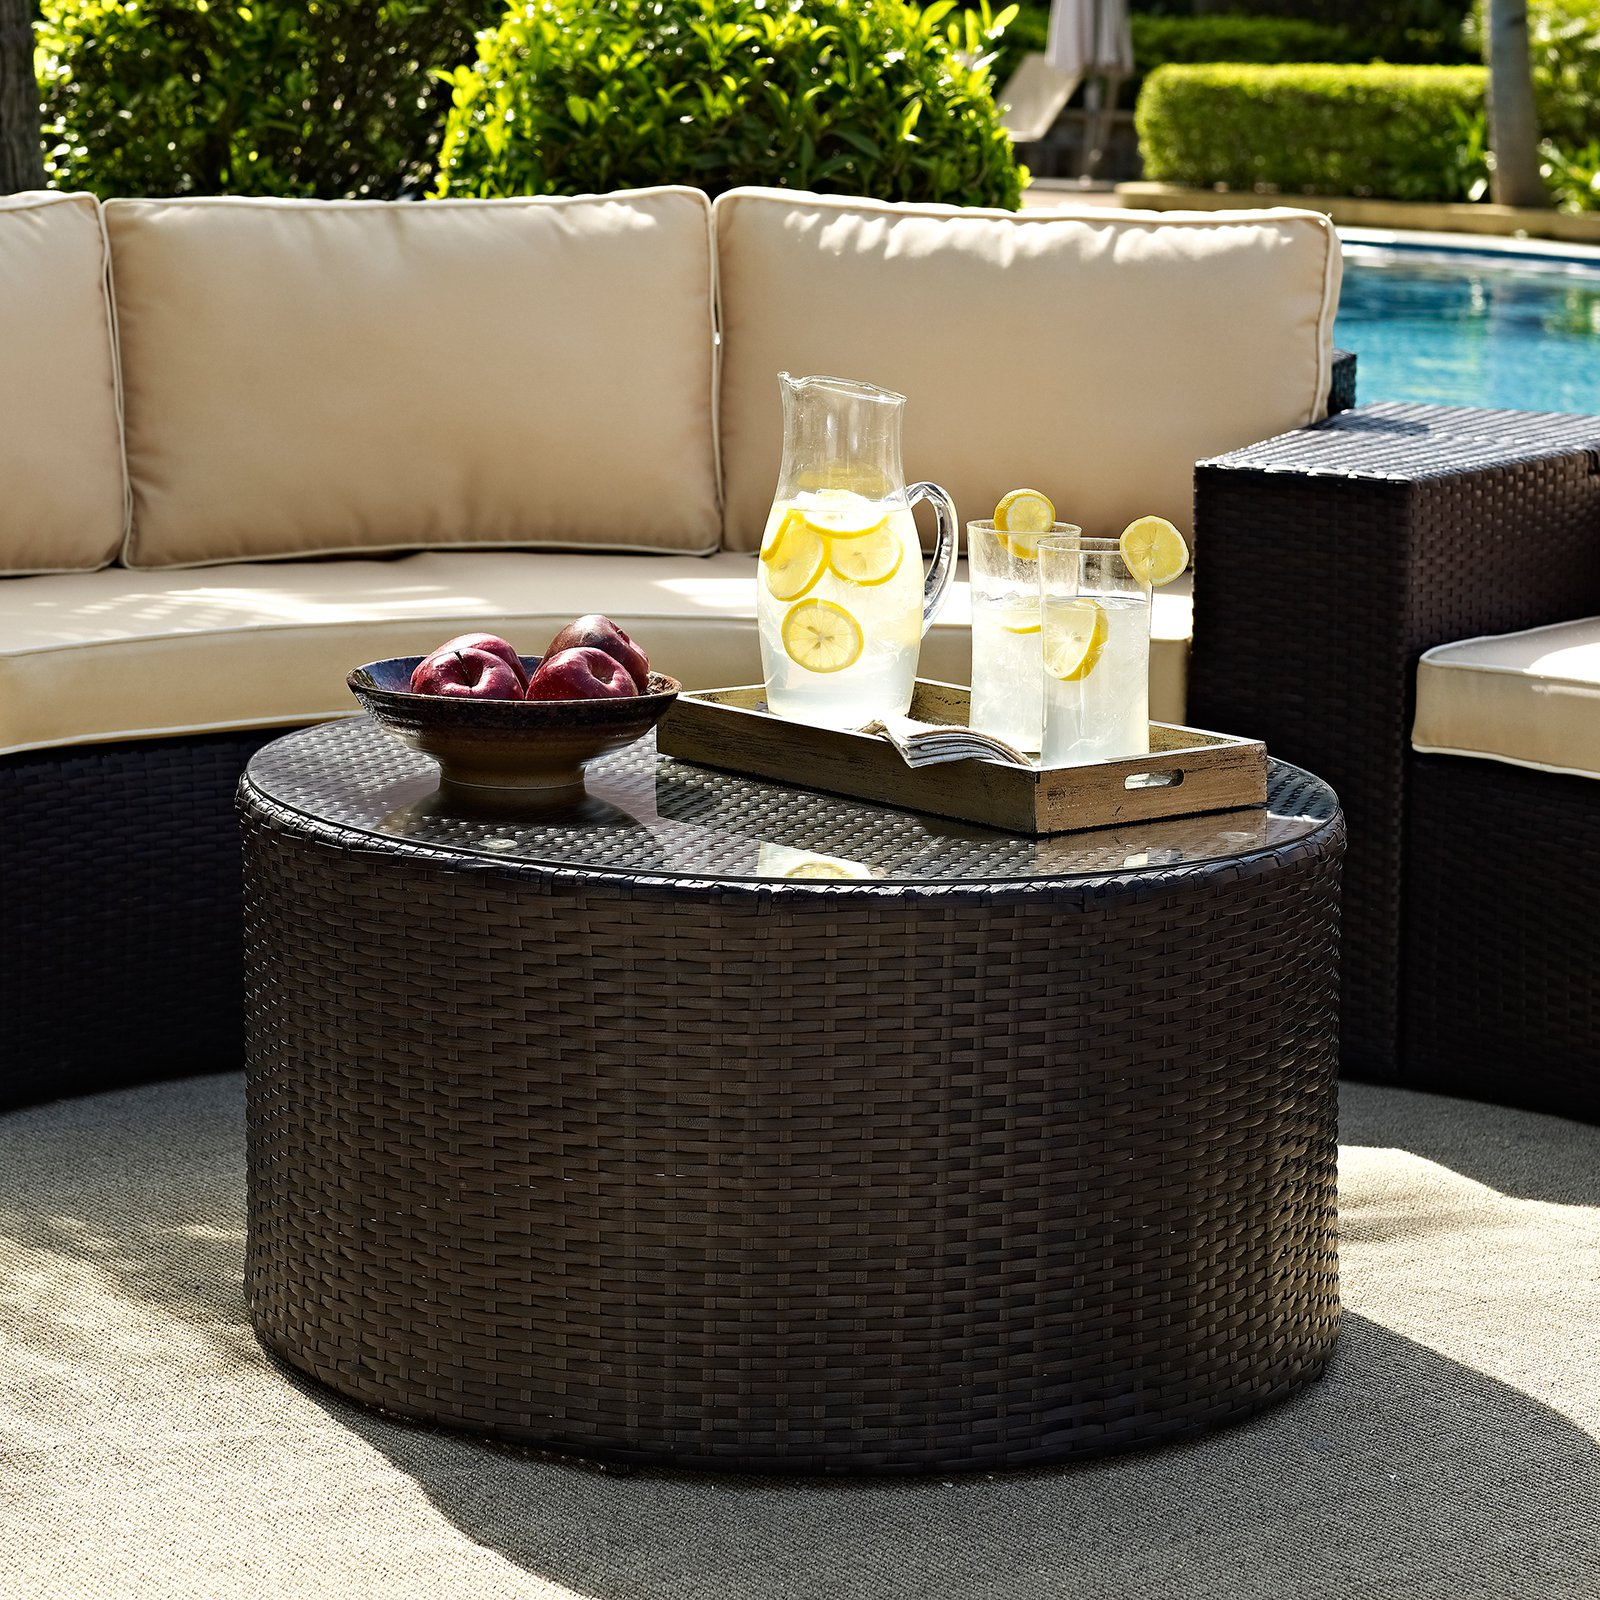 crosley furniture catalina outdoor wicker round glass top coffee accent table mid century modern dresser gallerie beds console and sofa tables dining room chairs silver drum white